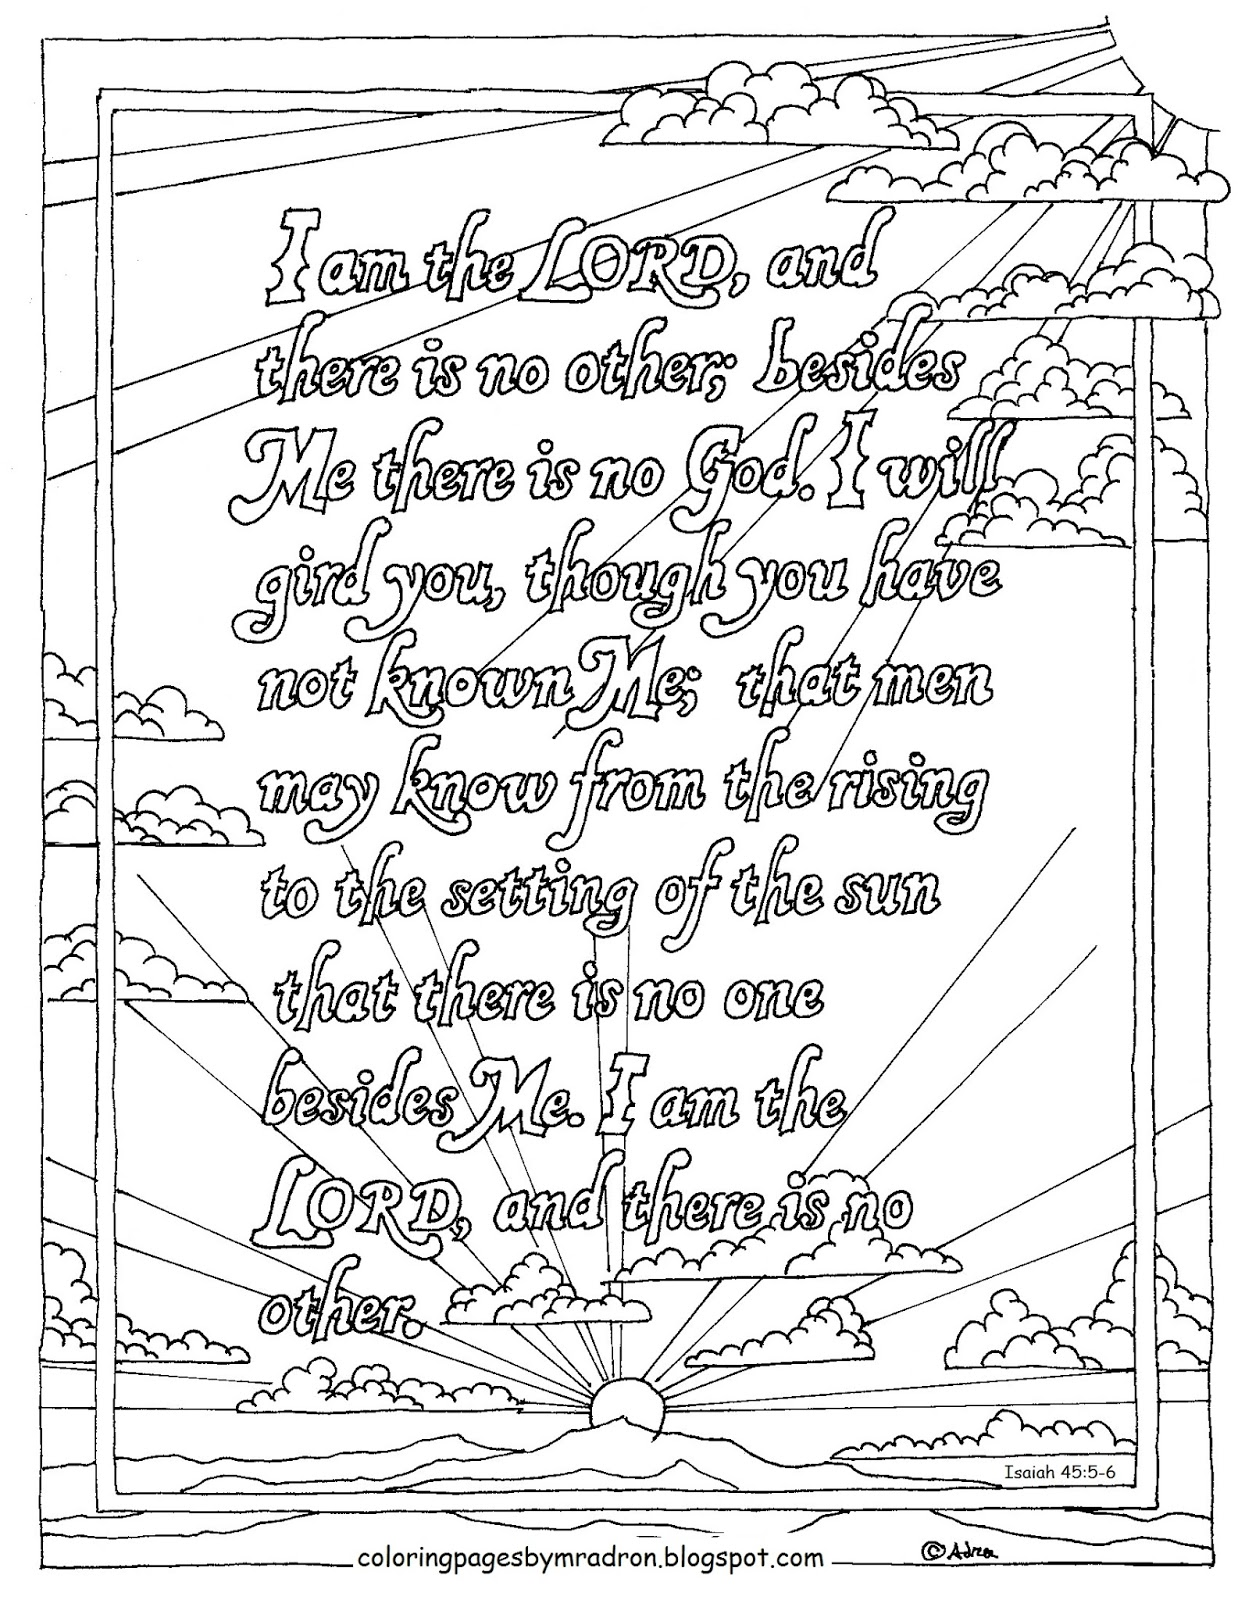 Coloring Pages For Kids By Mr Adron Printable Isaiah 45